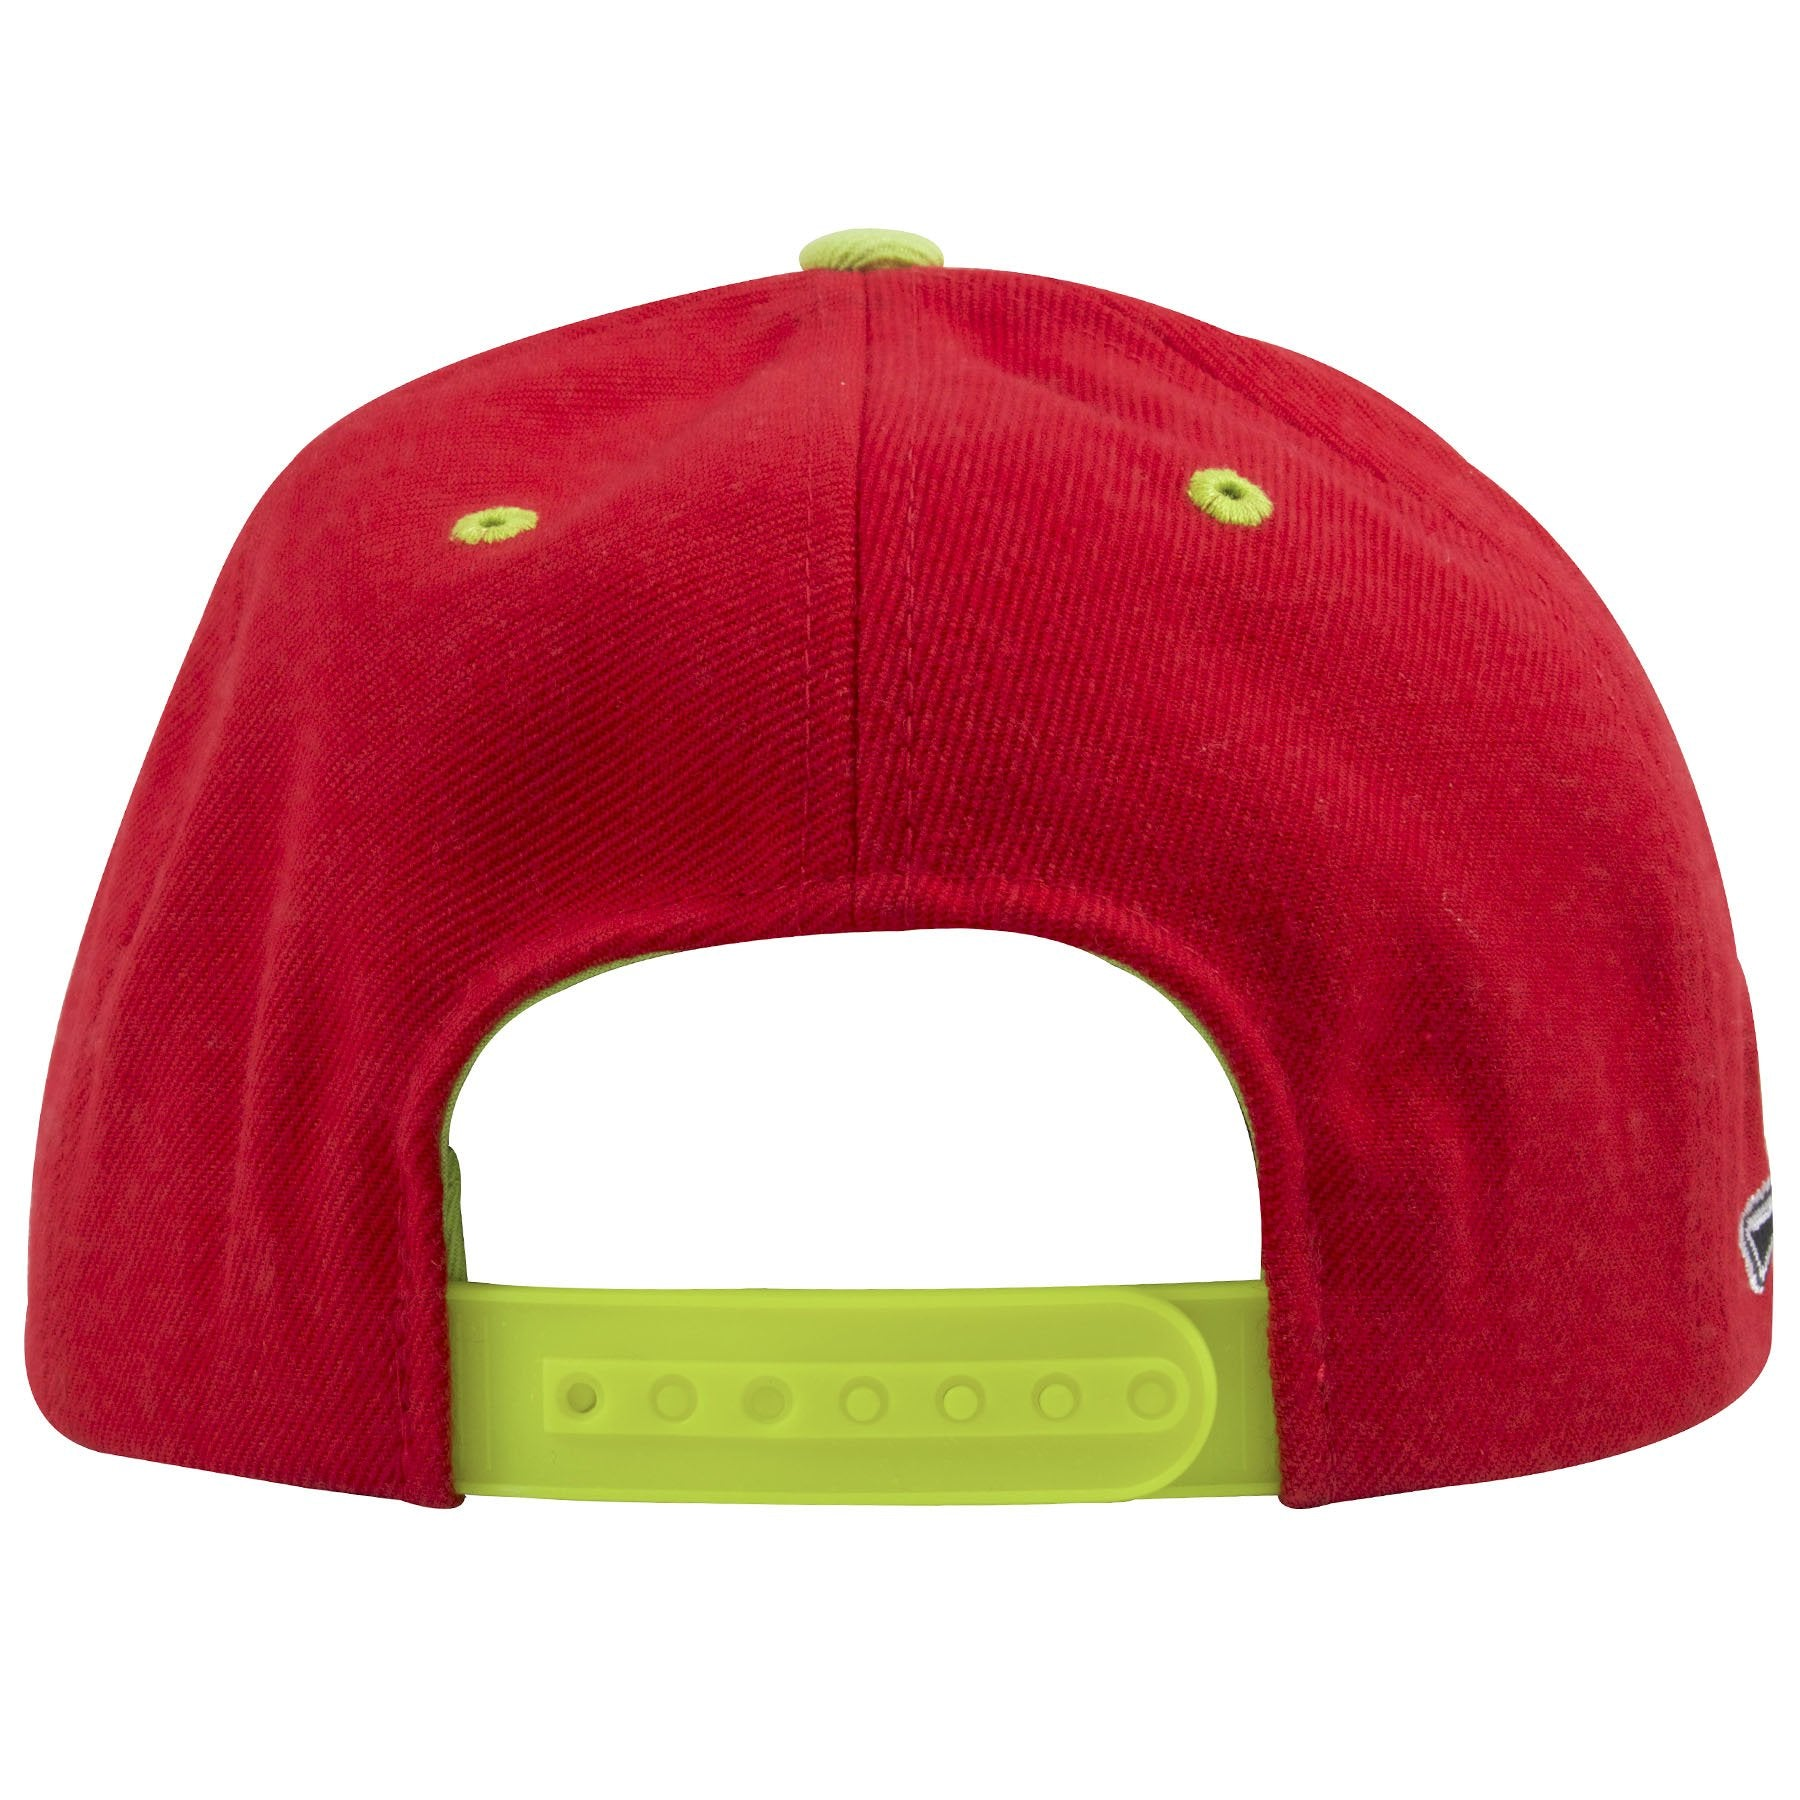 ... on the back of the university of las vegas runnin rebels snapback hat  is a neon ... 86f48d844870